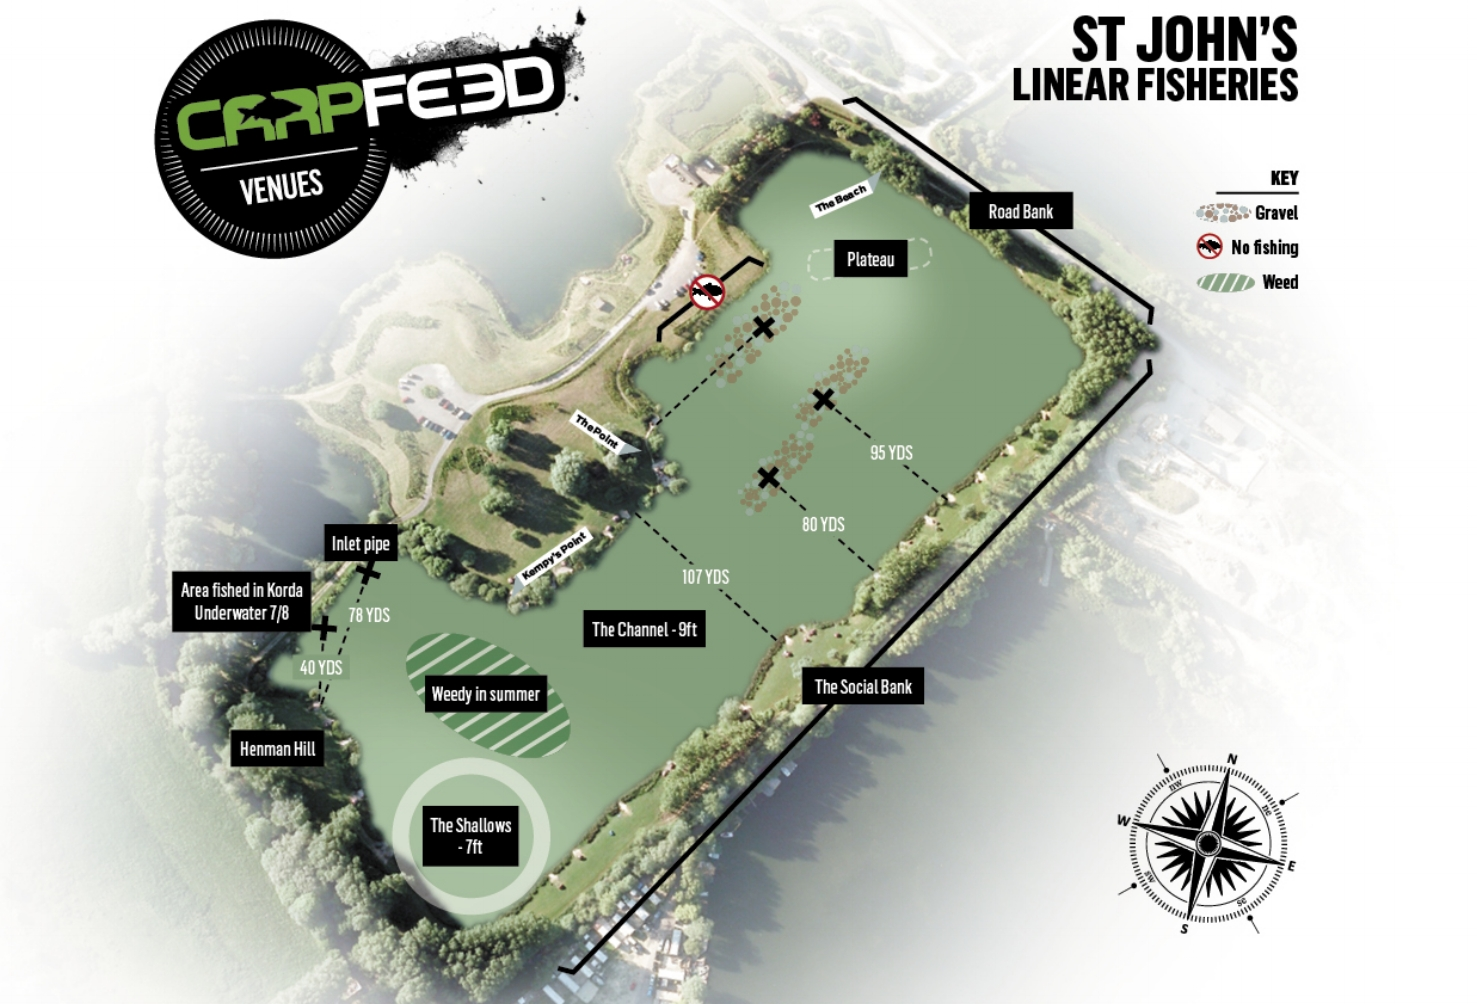 CLICK THE MAP FOR OUR GUIDE TO ST JOHN'S